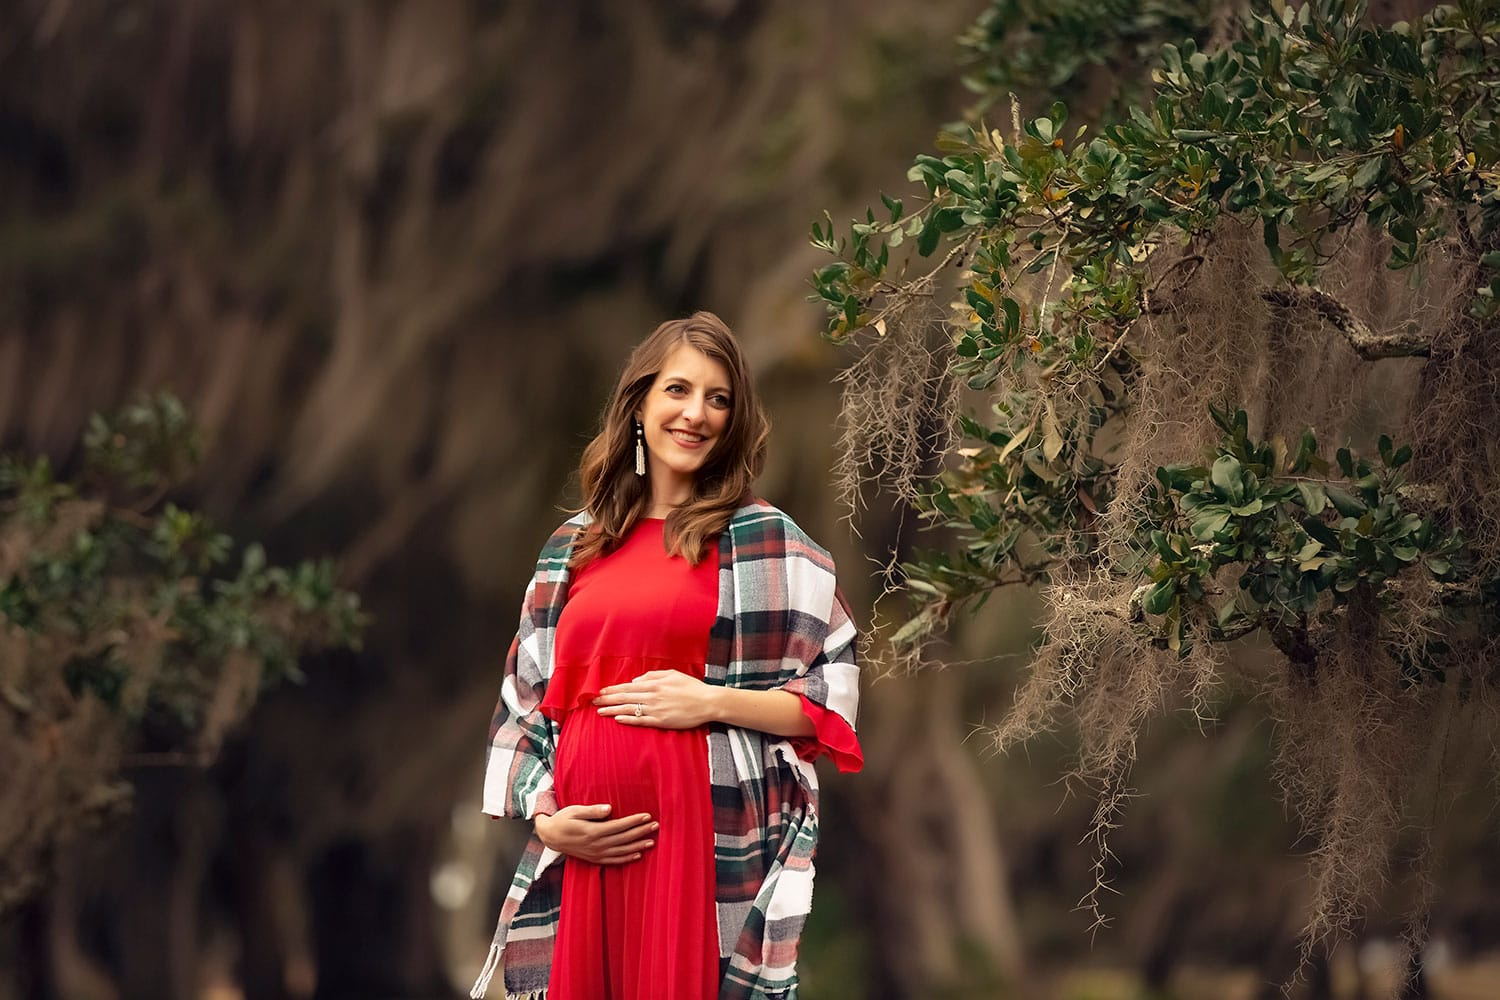 Pregnant lady with Christmas scarf